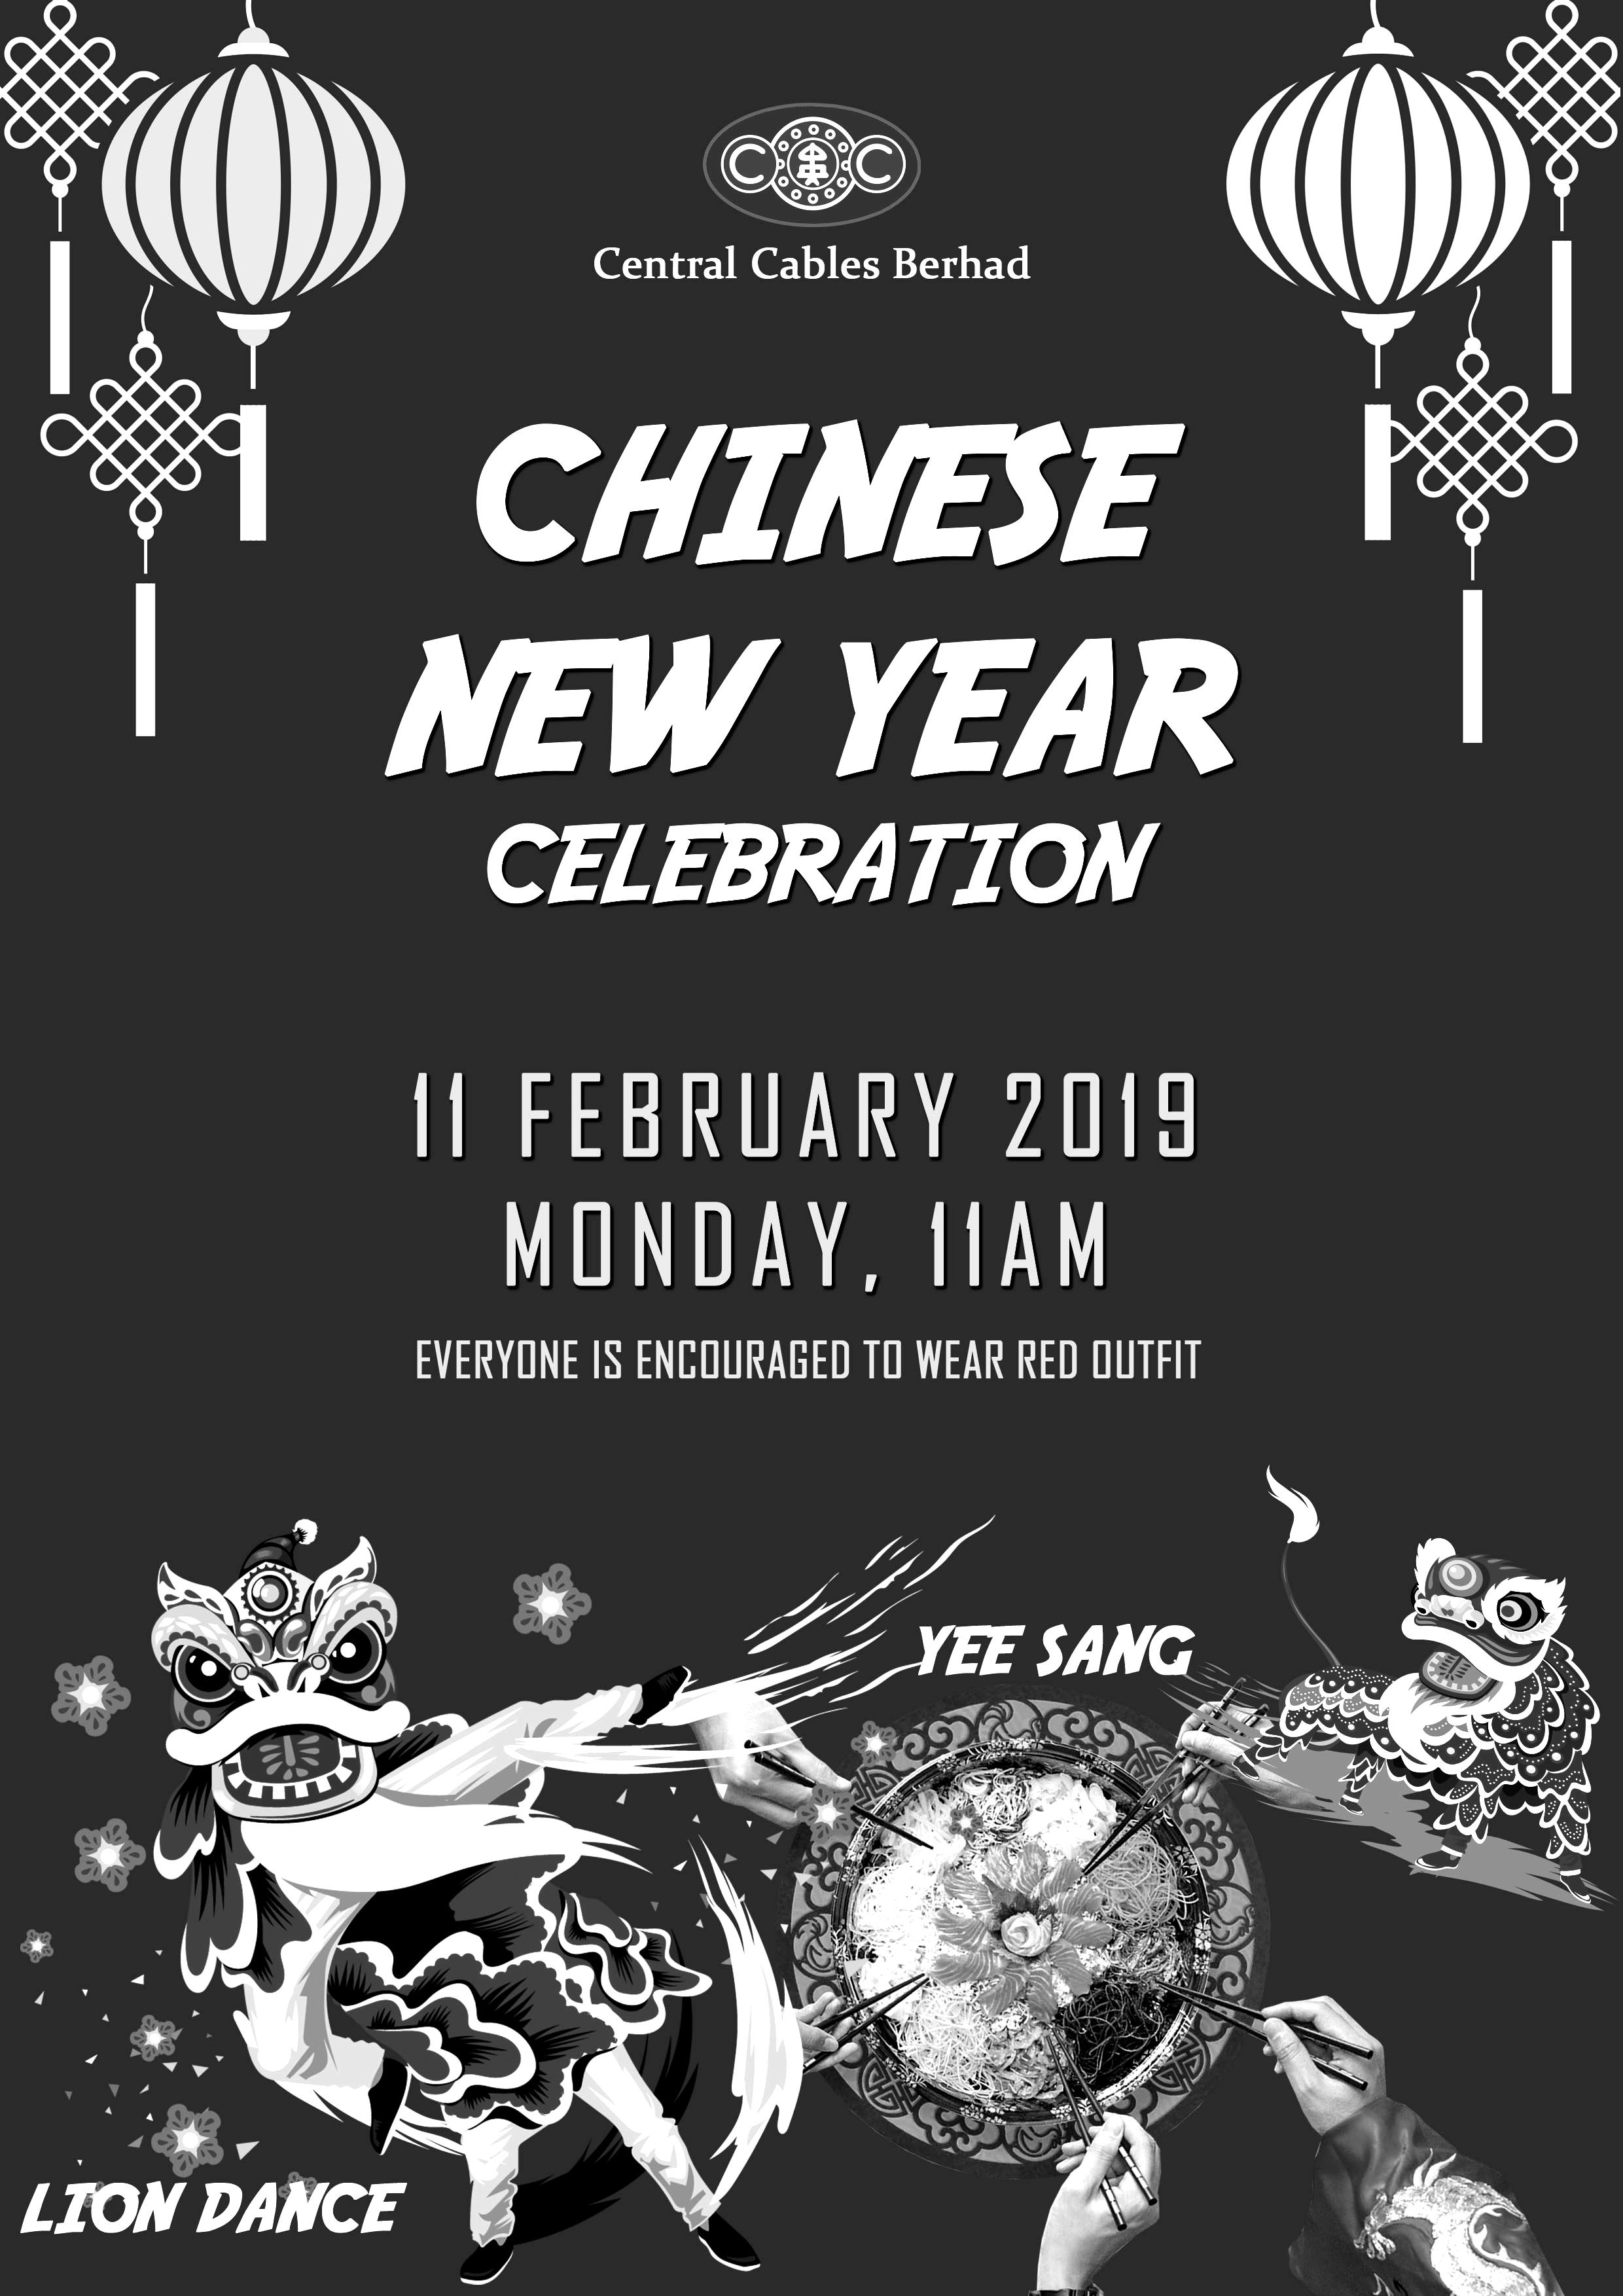 Central Cables Berhad – Chinese New Year Celebration 2019